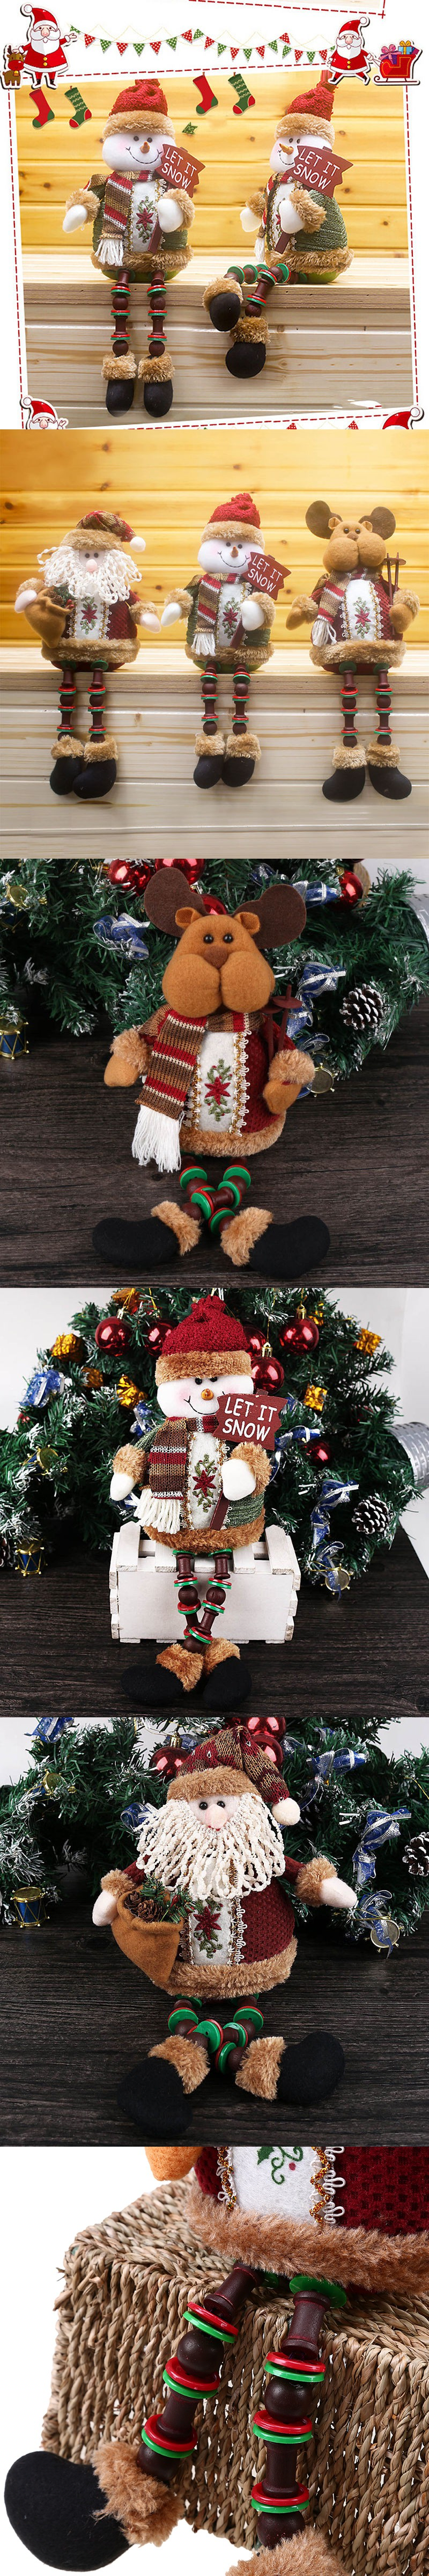 2016 New Xmas Santa Claus Snowman Reindeer Ornaments Festival Party Home Decoration Gift $7.27